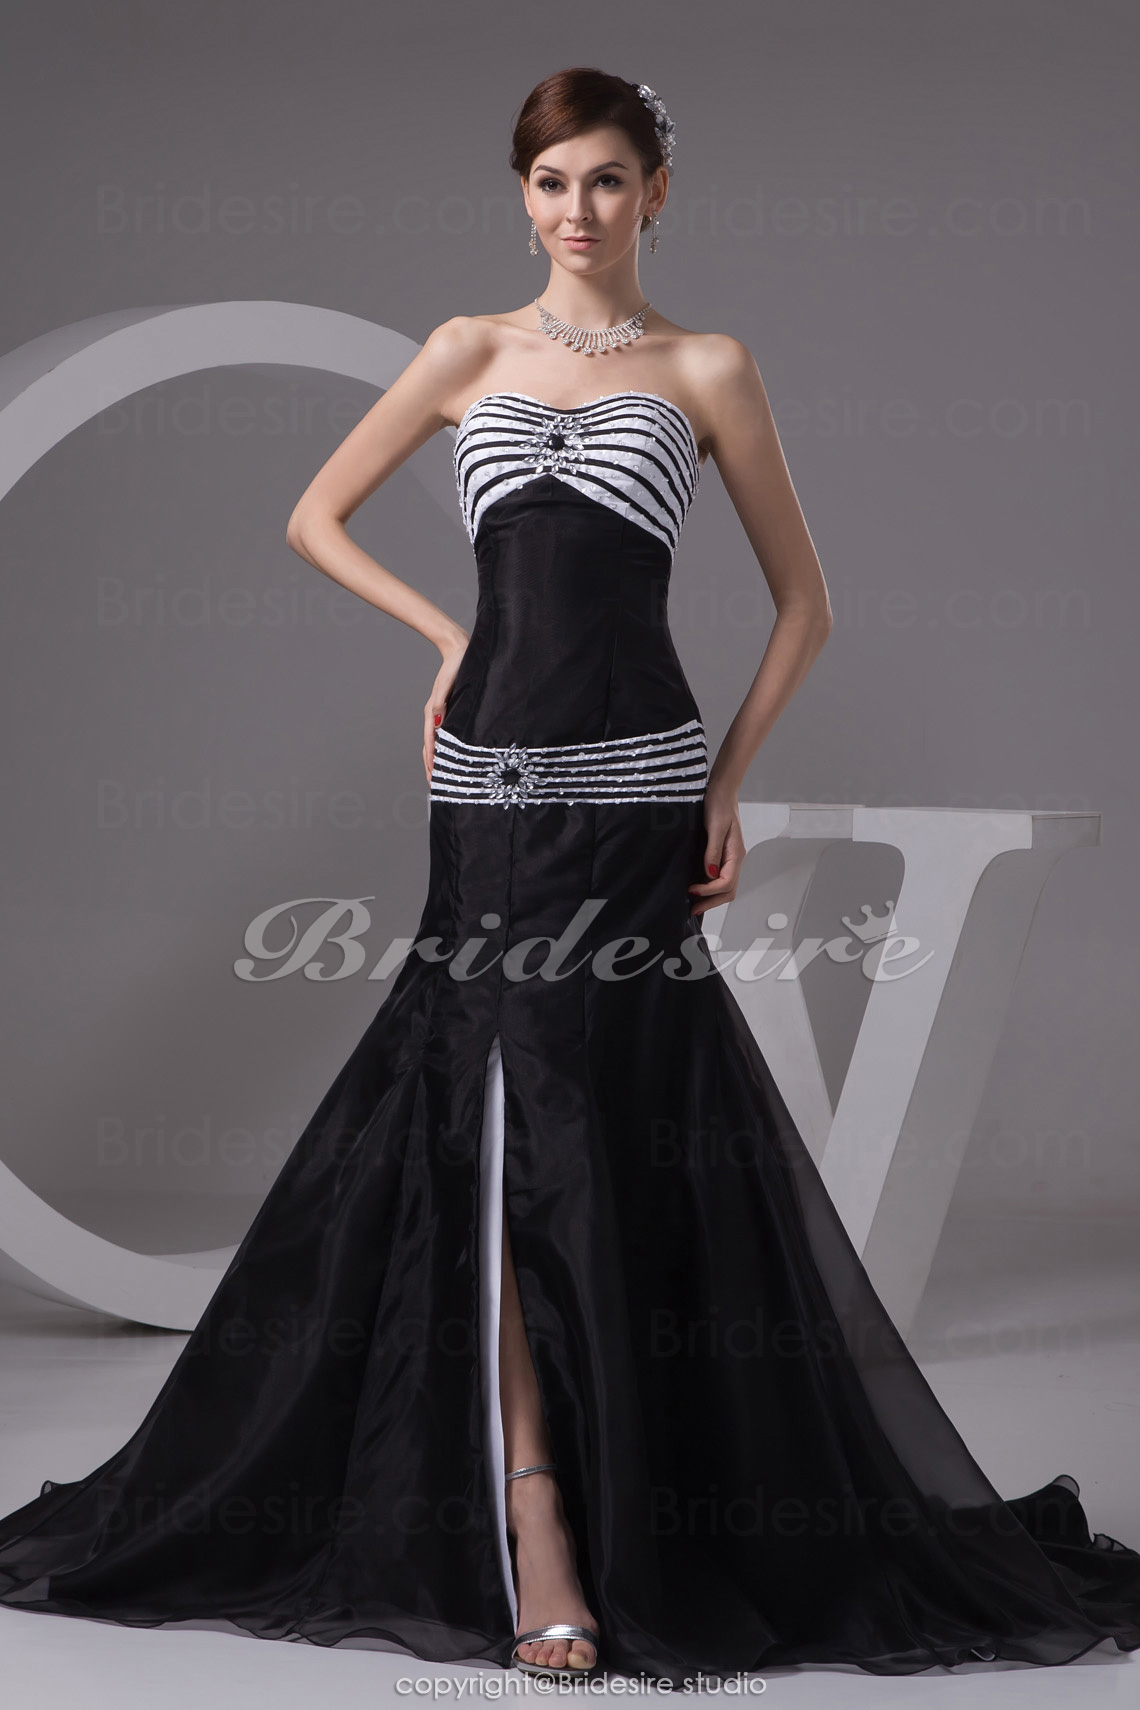 Trumpet/Mermaid Sweetheart Court Train Sleeveless Organza Taffeta Dress